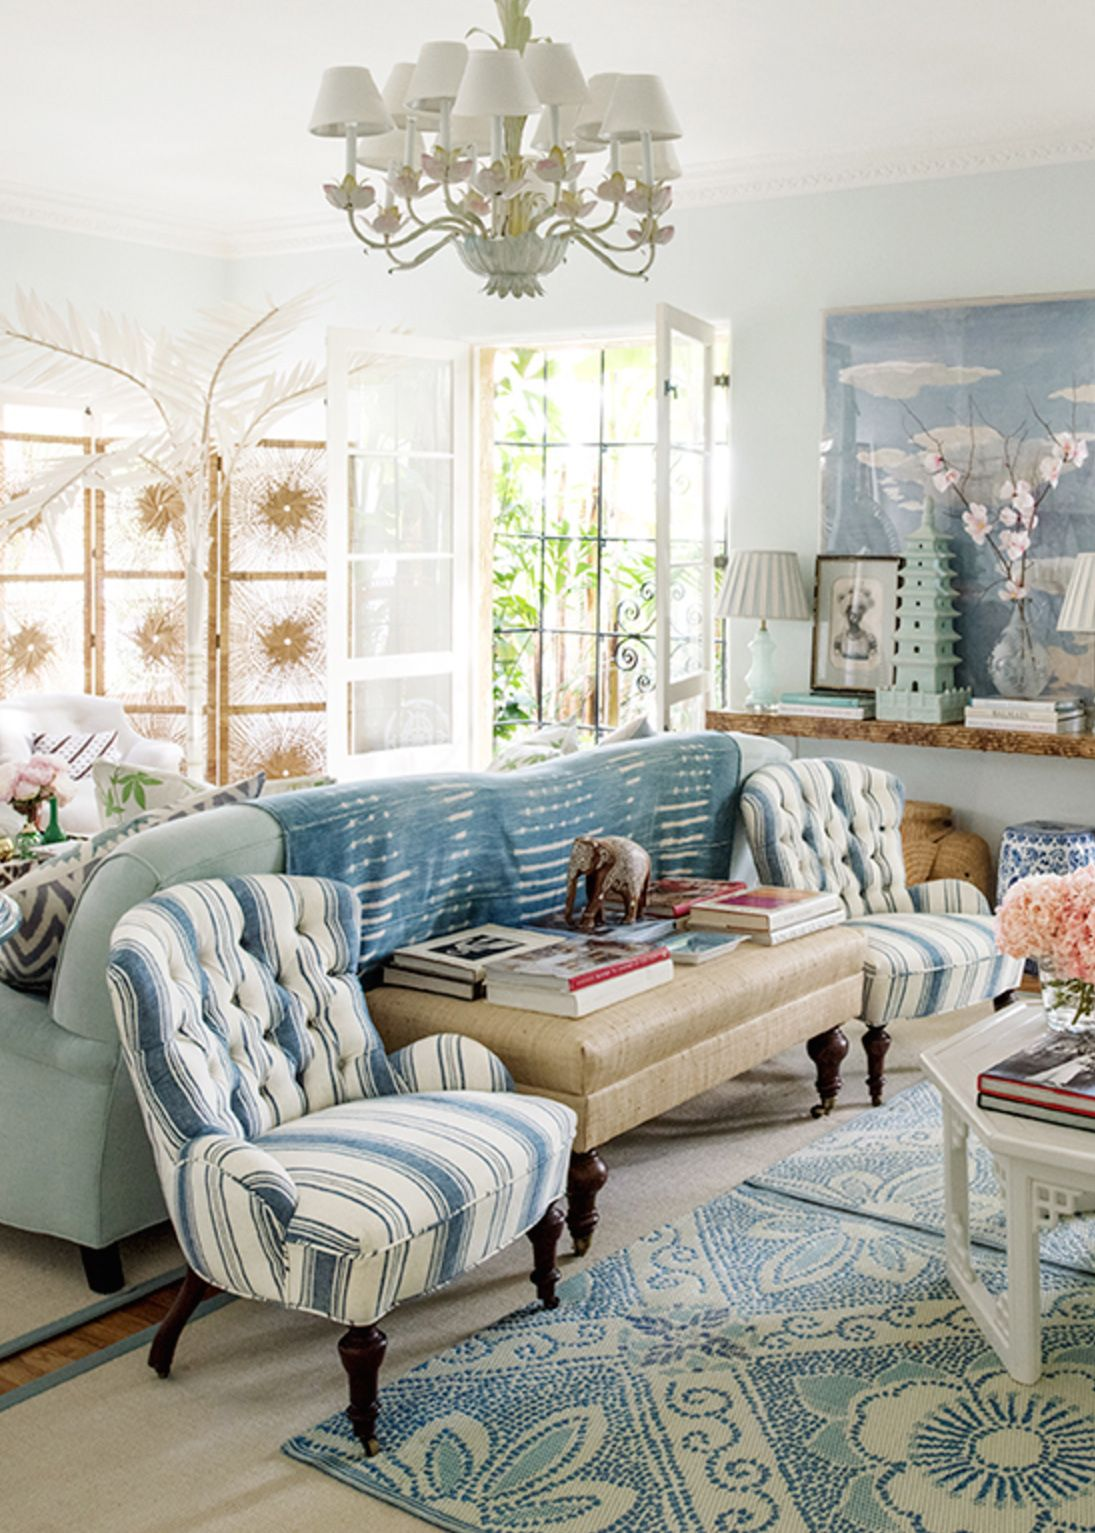 House Tour :: Beach Bohemian In Classic Blues | House tours, Living ...